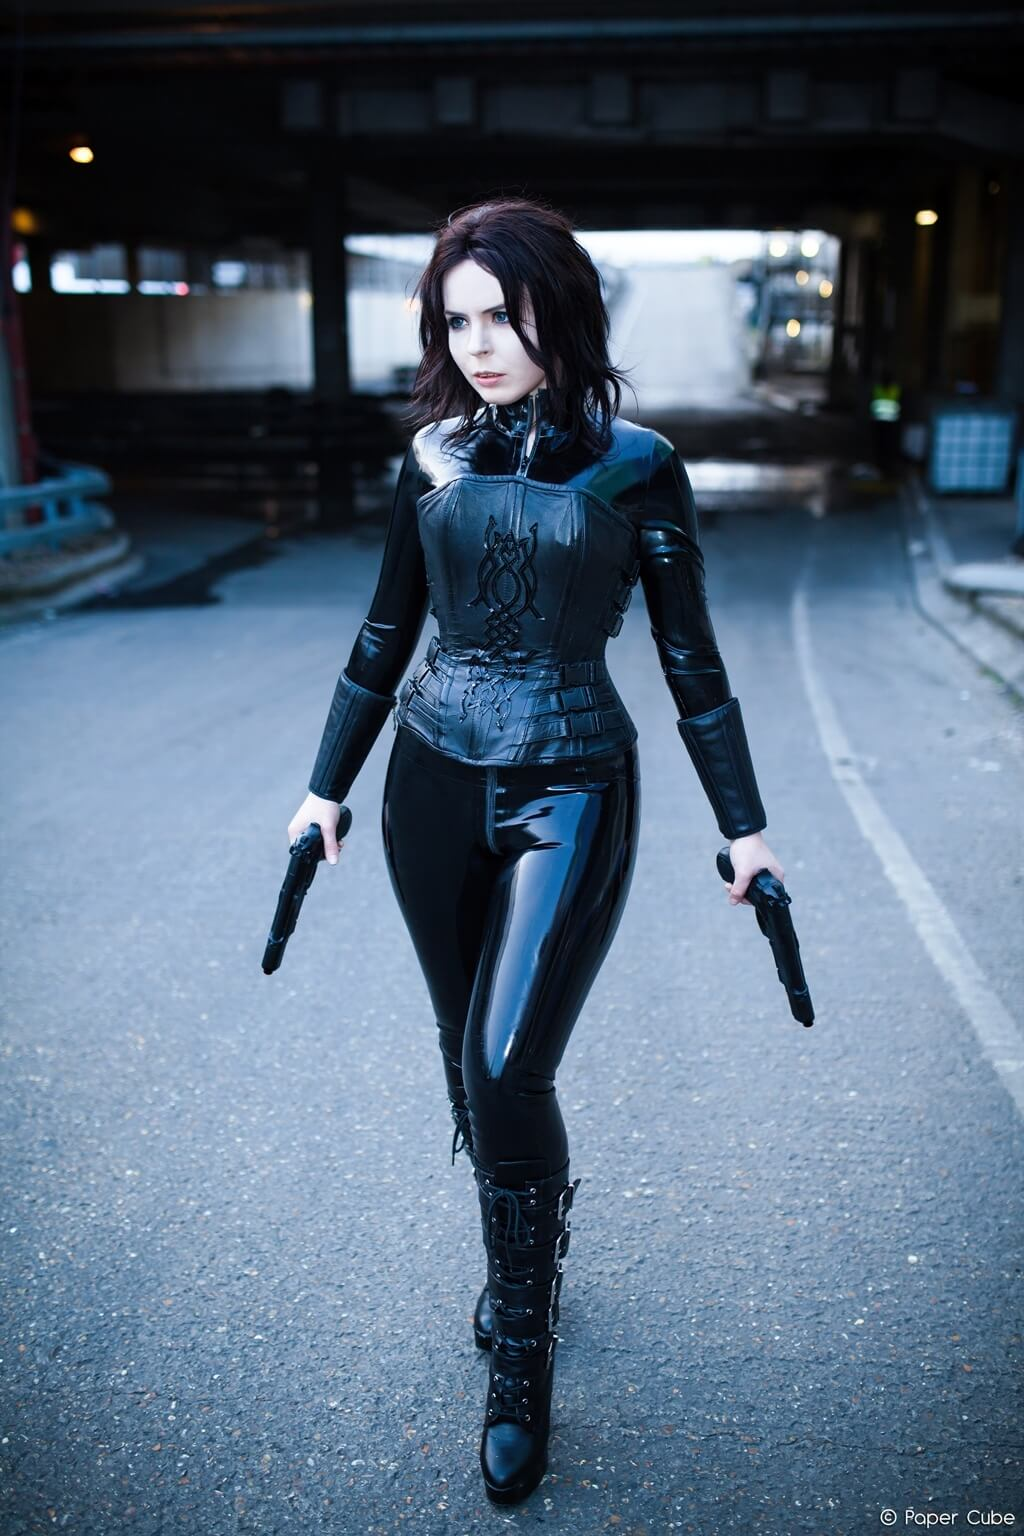 Midknight Dragon Selene Cosplay Underworld Creative Ads